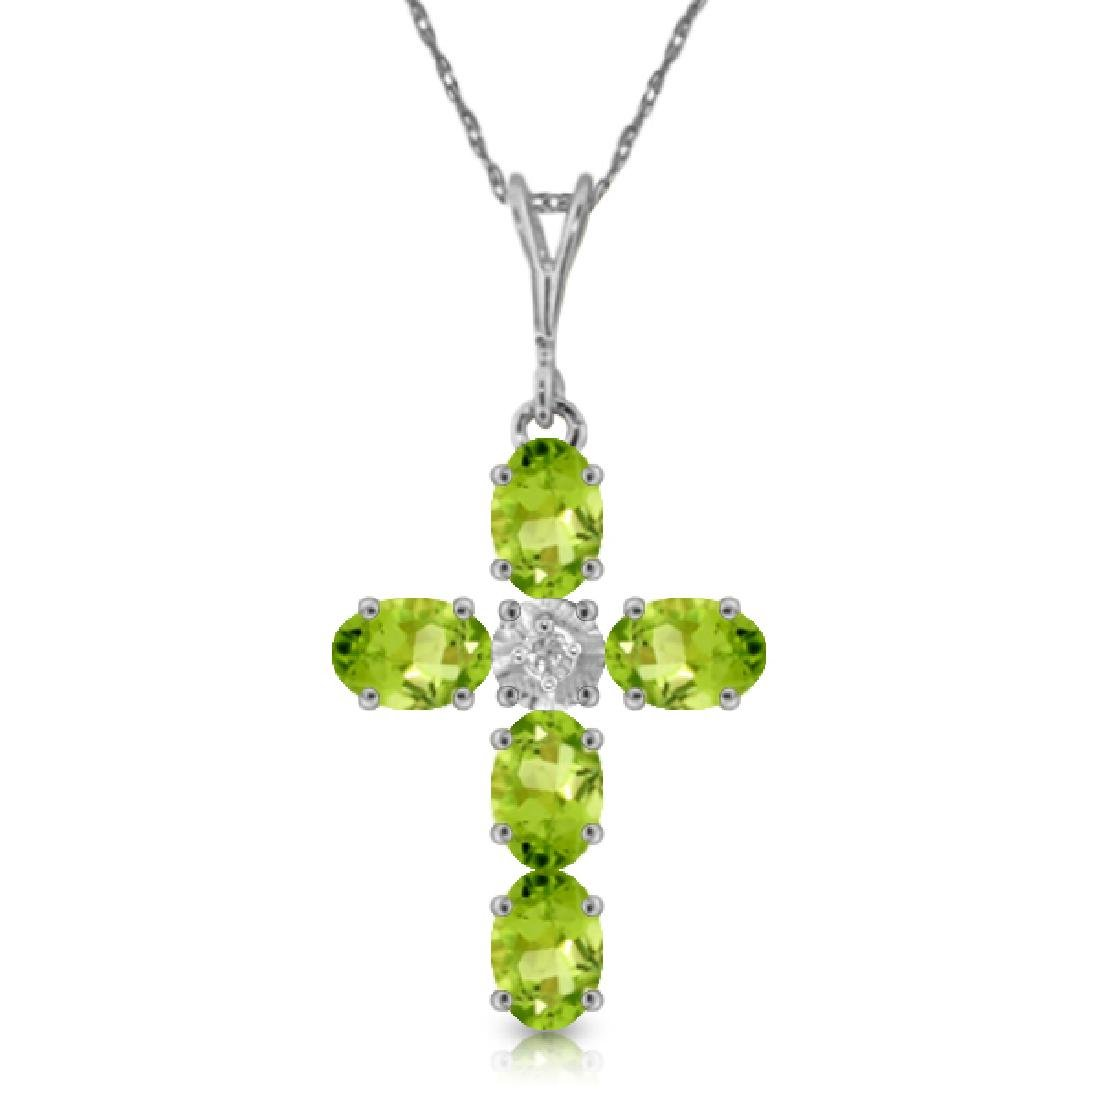 Genuine 1.88 ctw Peridot & Diamond Necklace Jewelry